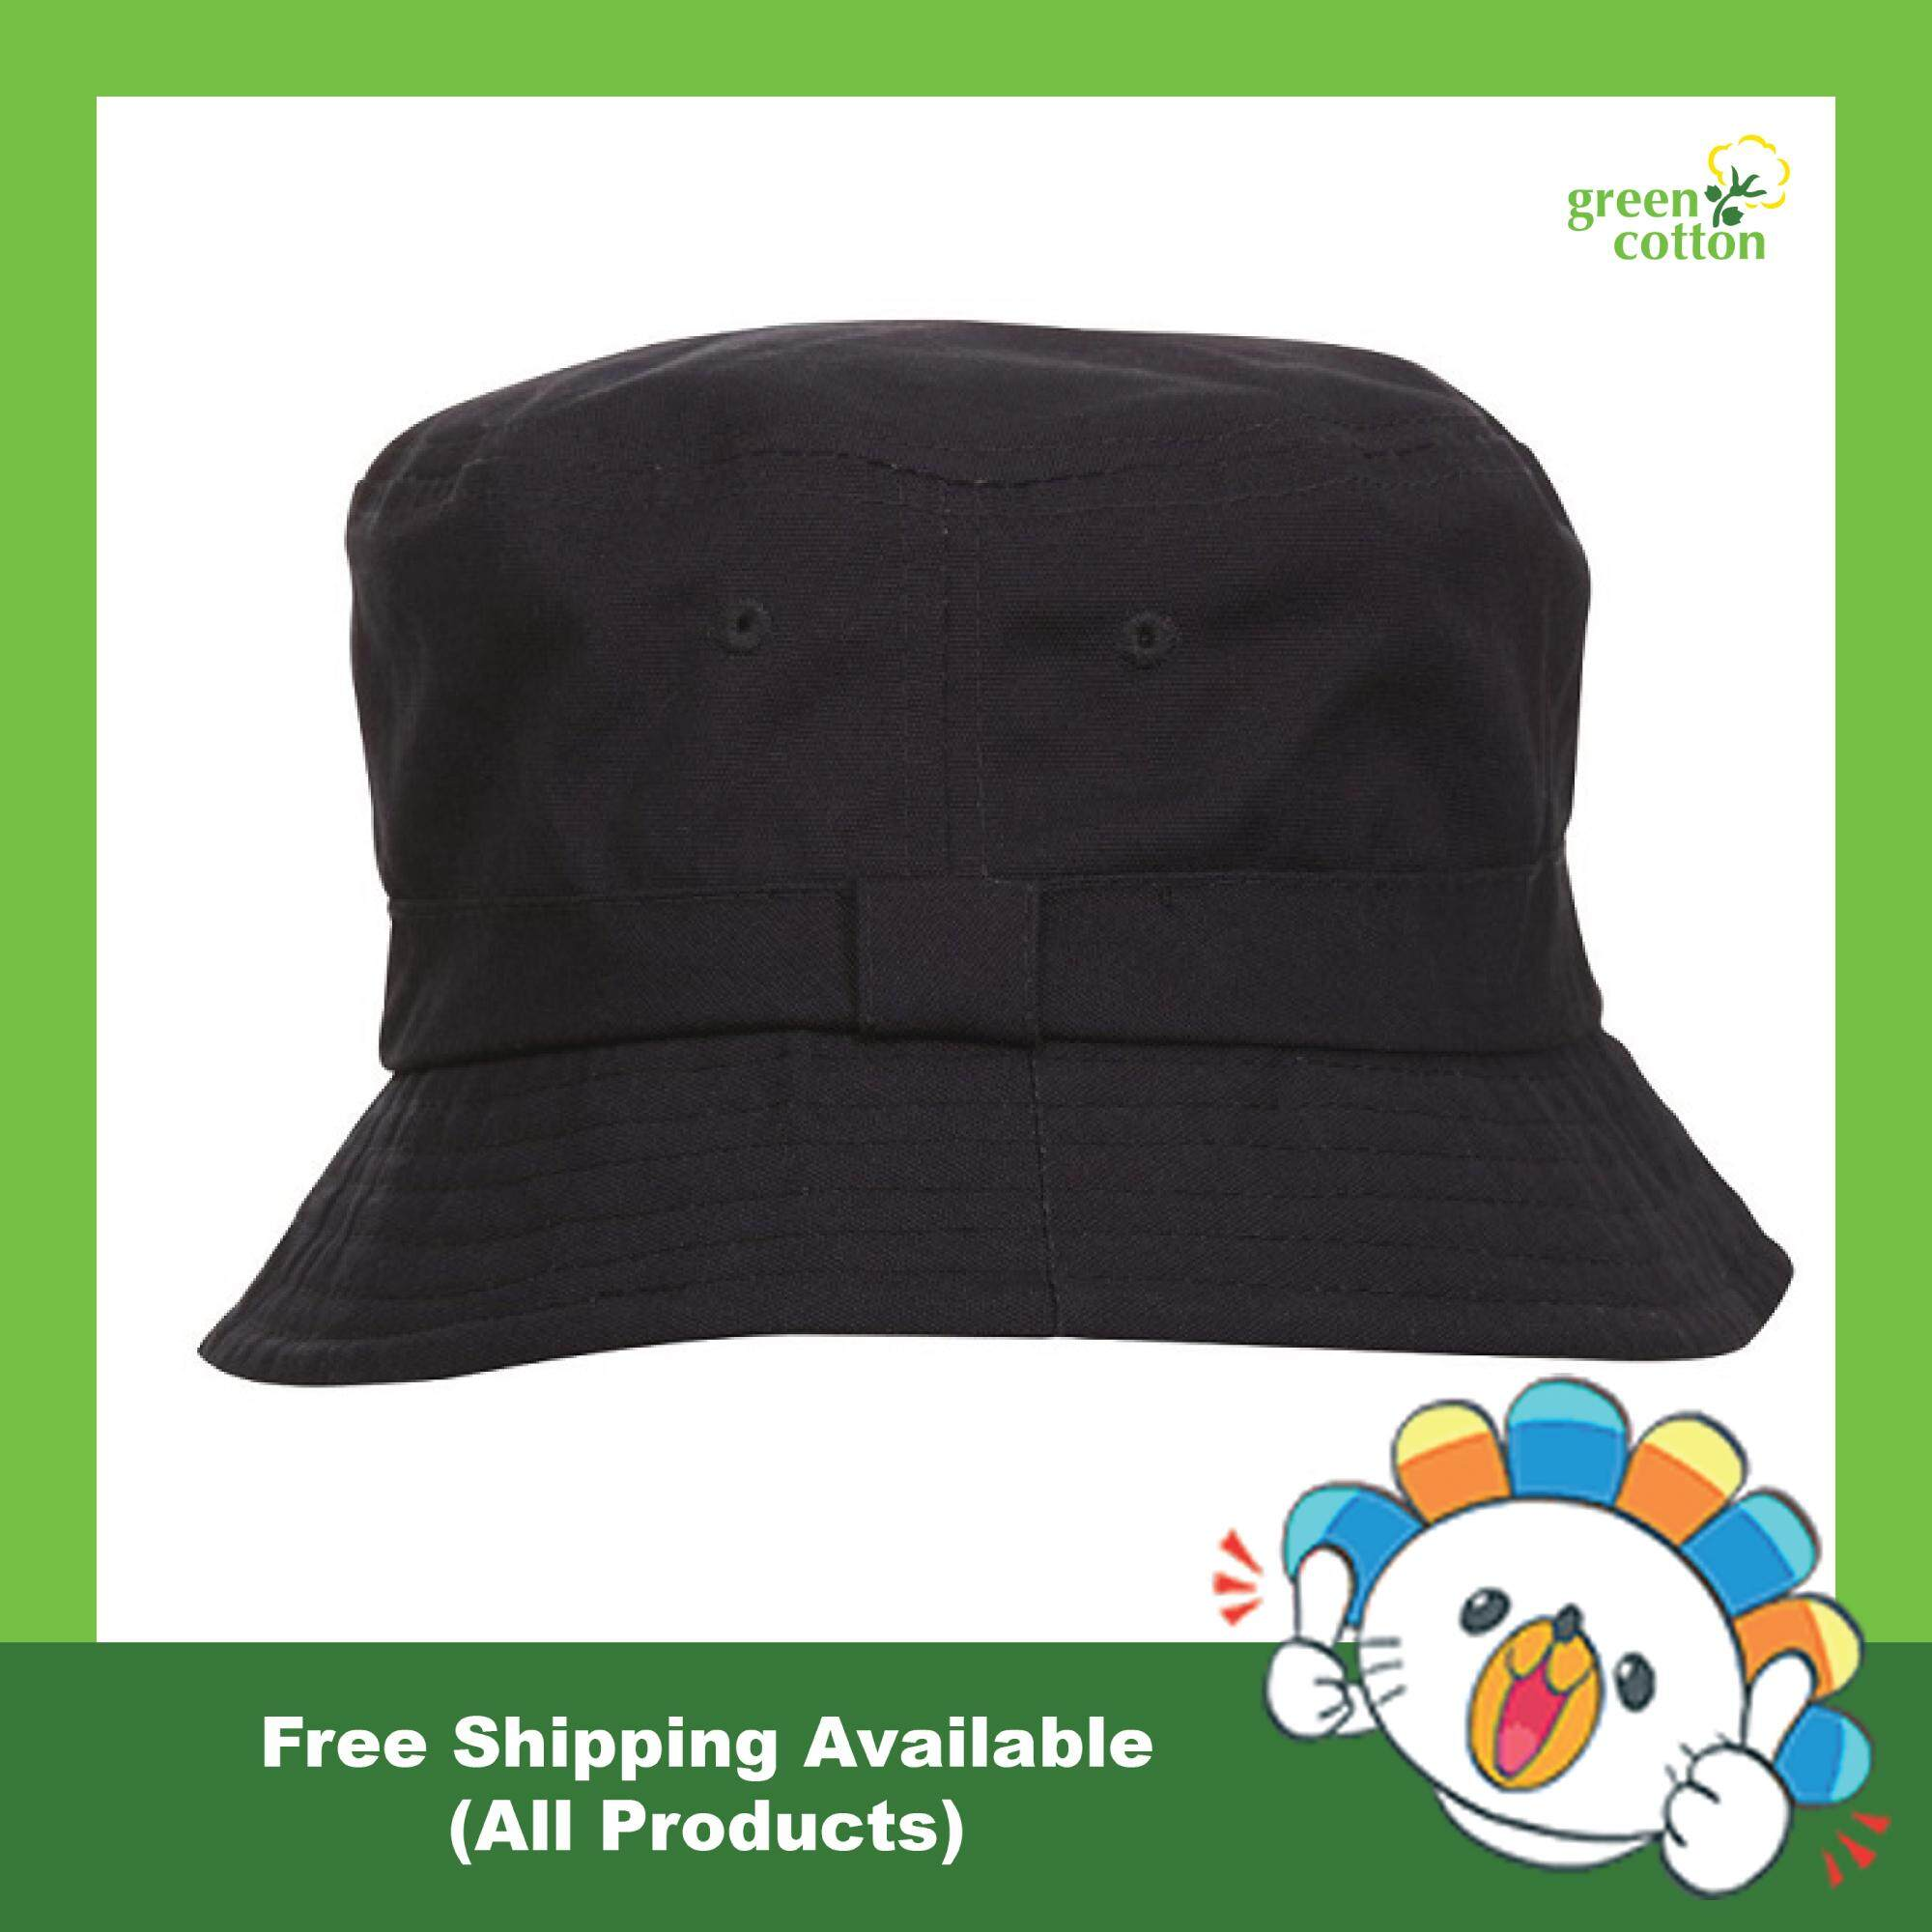 ba92df35f91 Women Hats   Accessories With Best Online Price In Malaysia